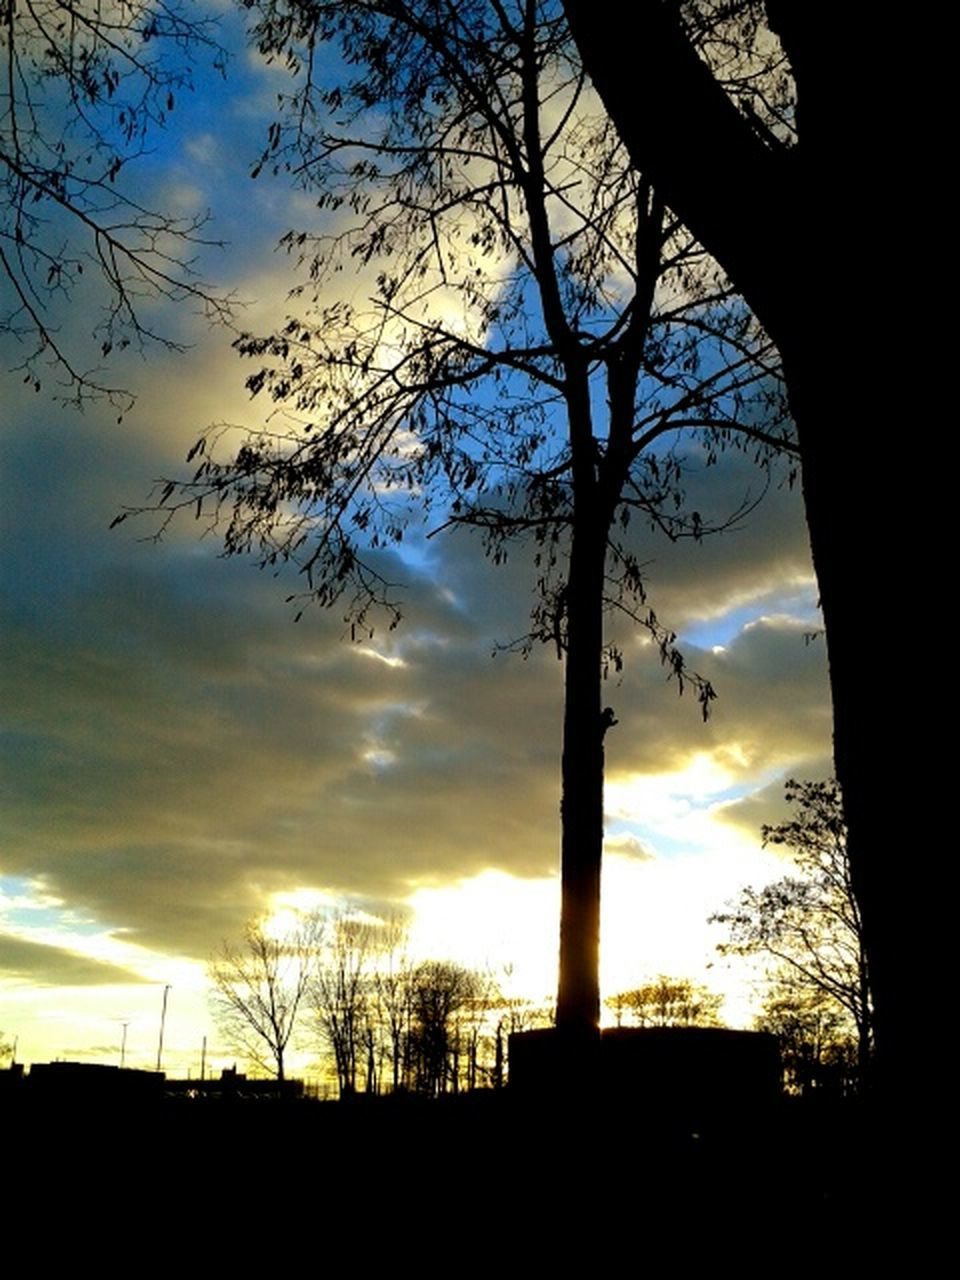 silhouette, sunset, tree, sky, cloud - sky, nature, scenics, tranquil scene, beauty in nature, no people, outdoors, tranquility, low angle view, tree trunk, landscape, branch, bird, day